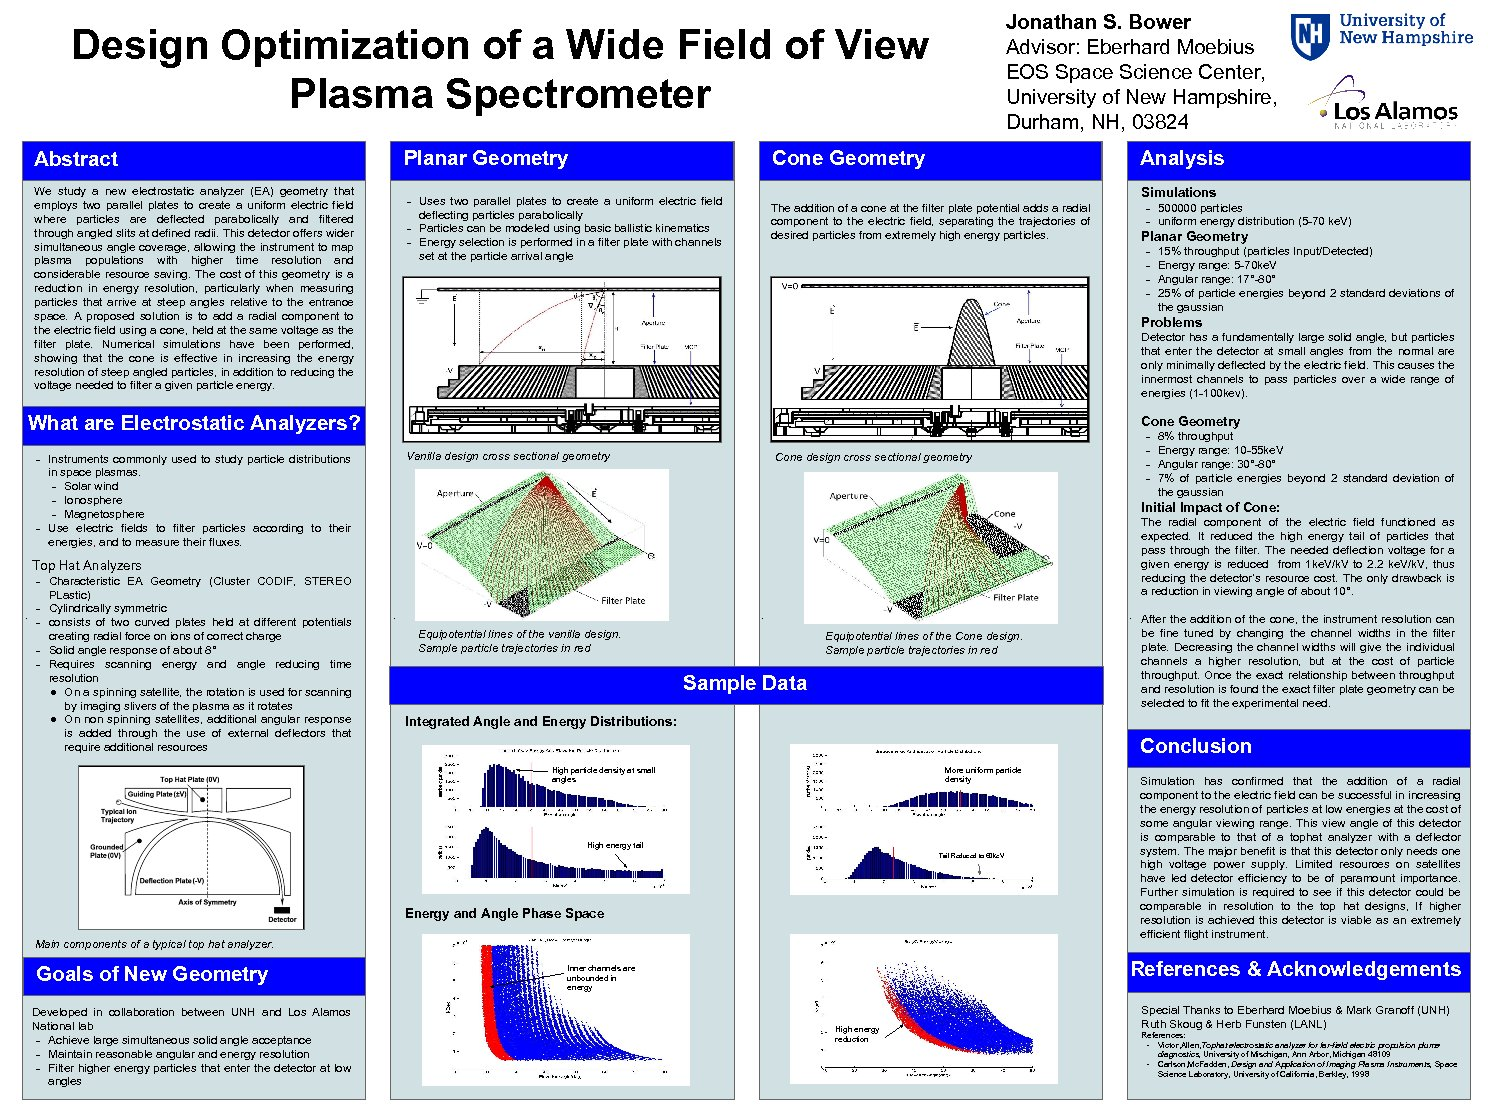 Design Optimization Of A Wide Field Of View Plasma Spectrometer by jsx54